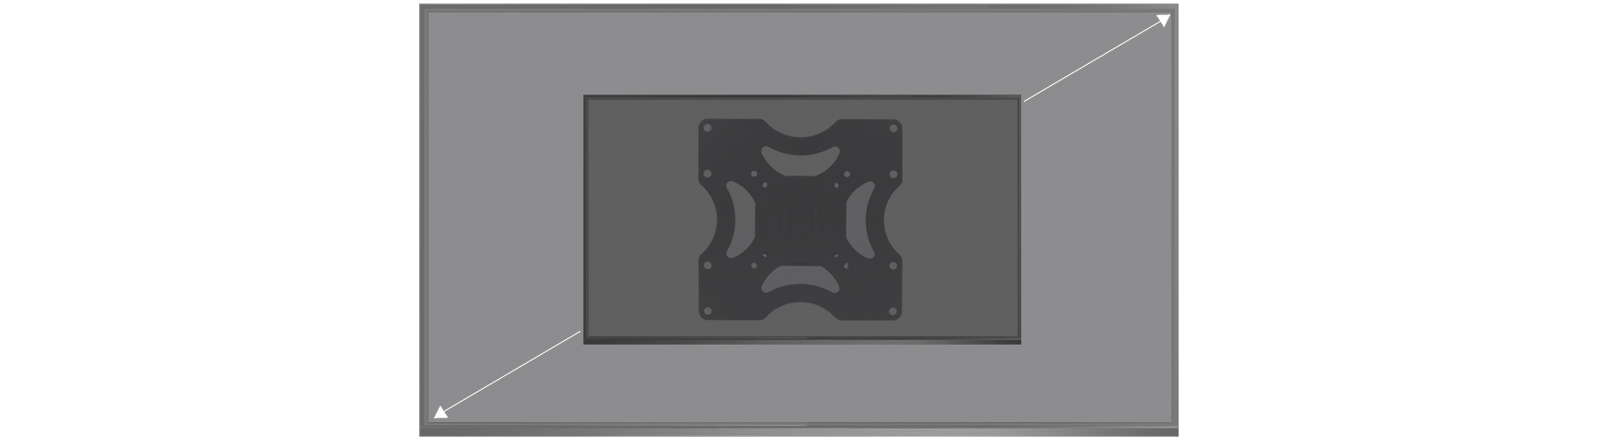 Slim TV Wall Mount ARCTIC TV Basic S for 42-55 Inches